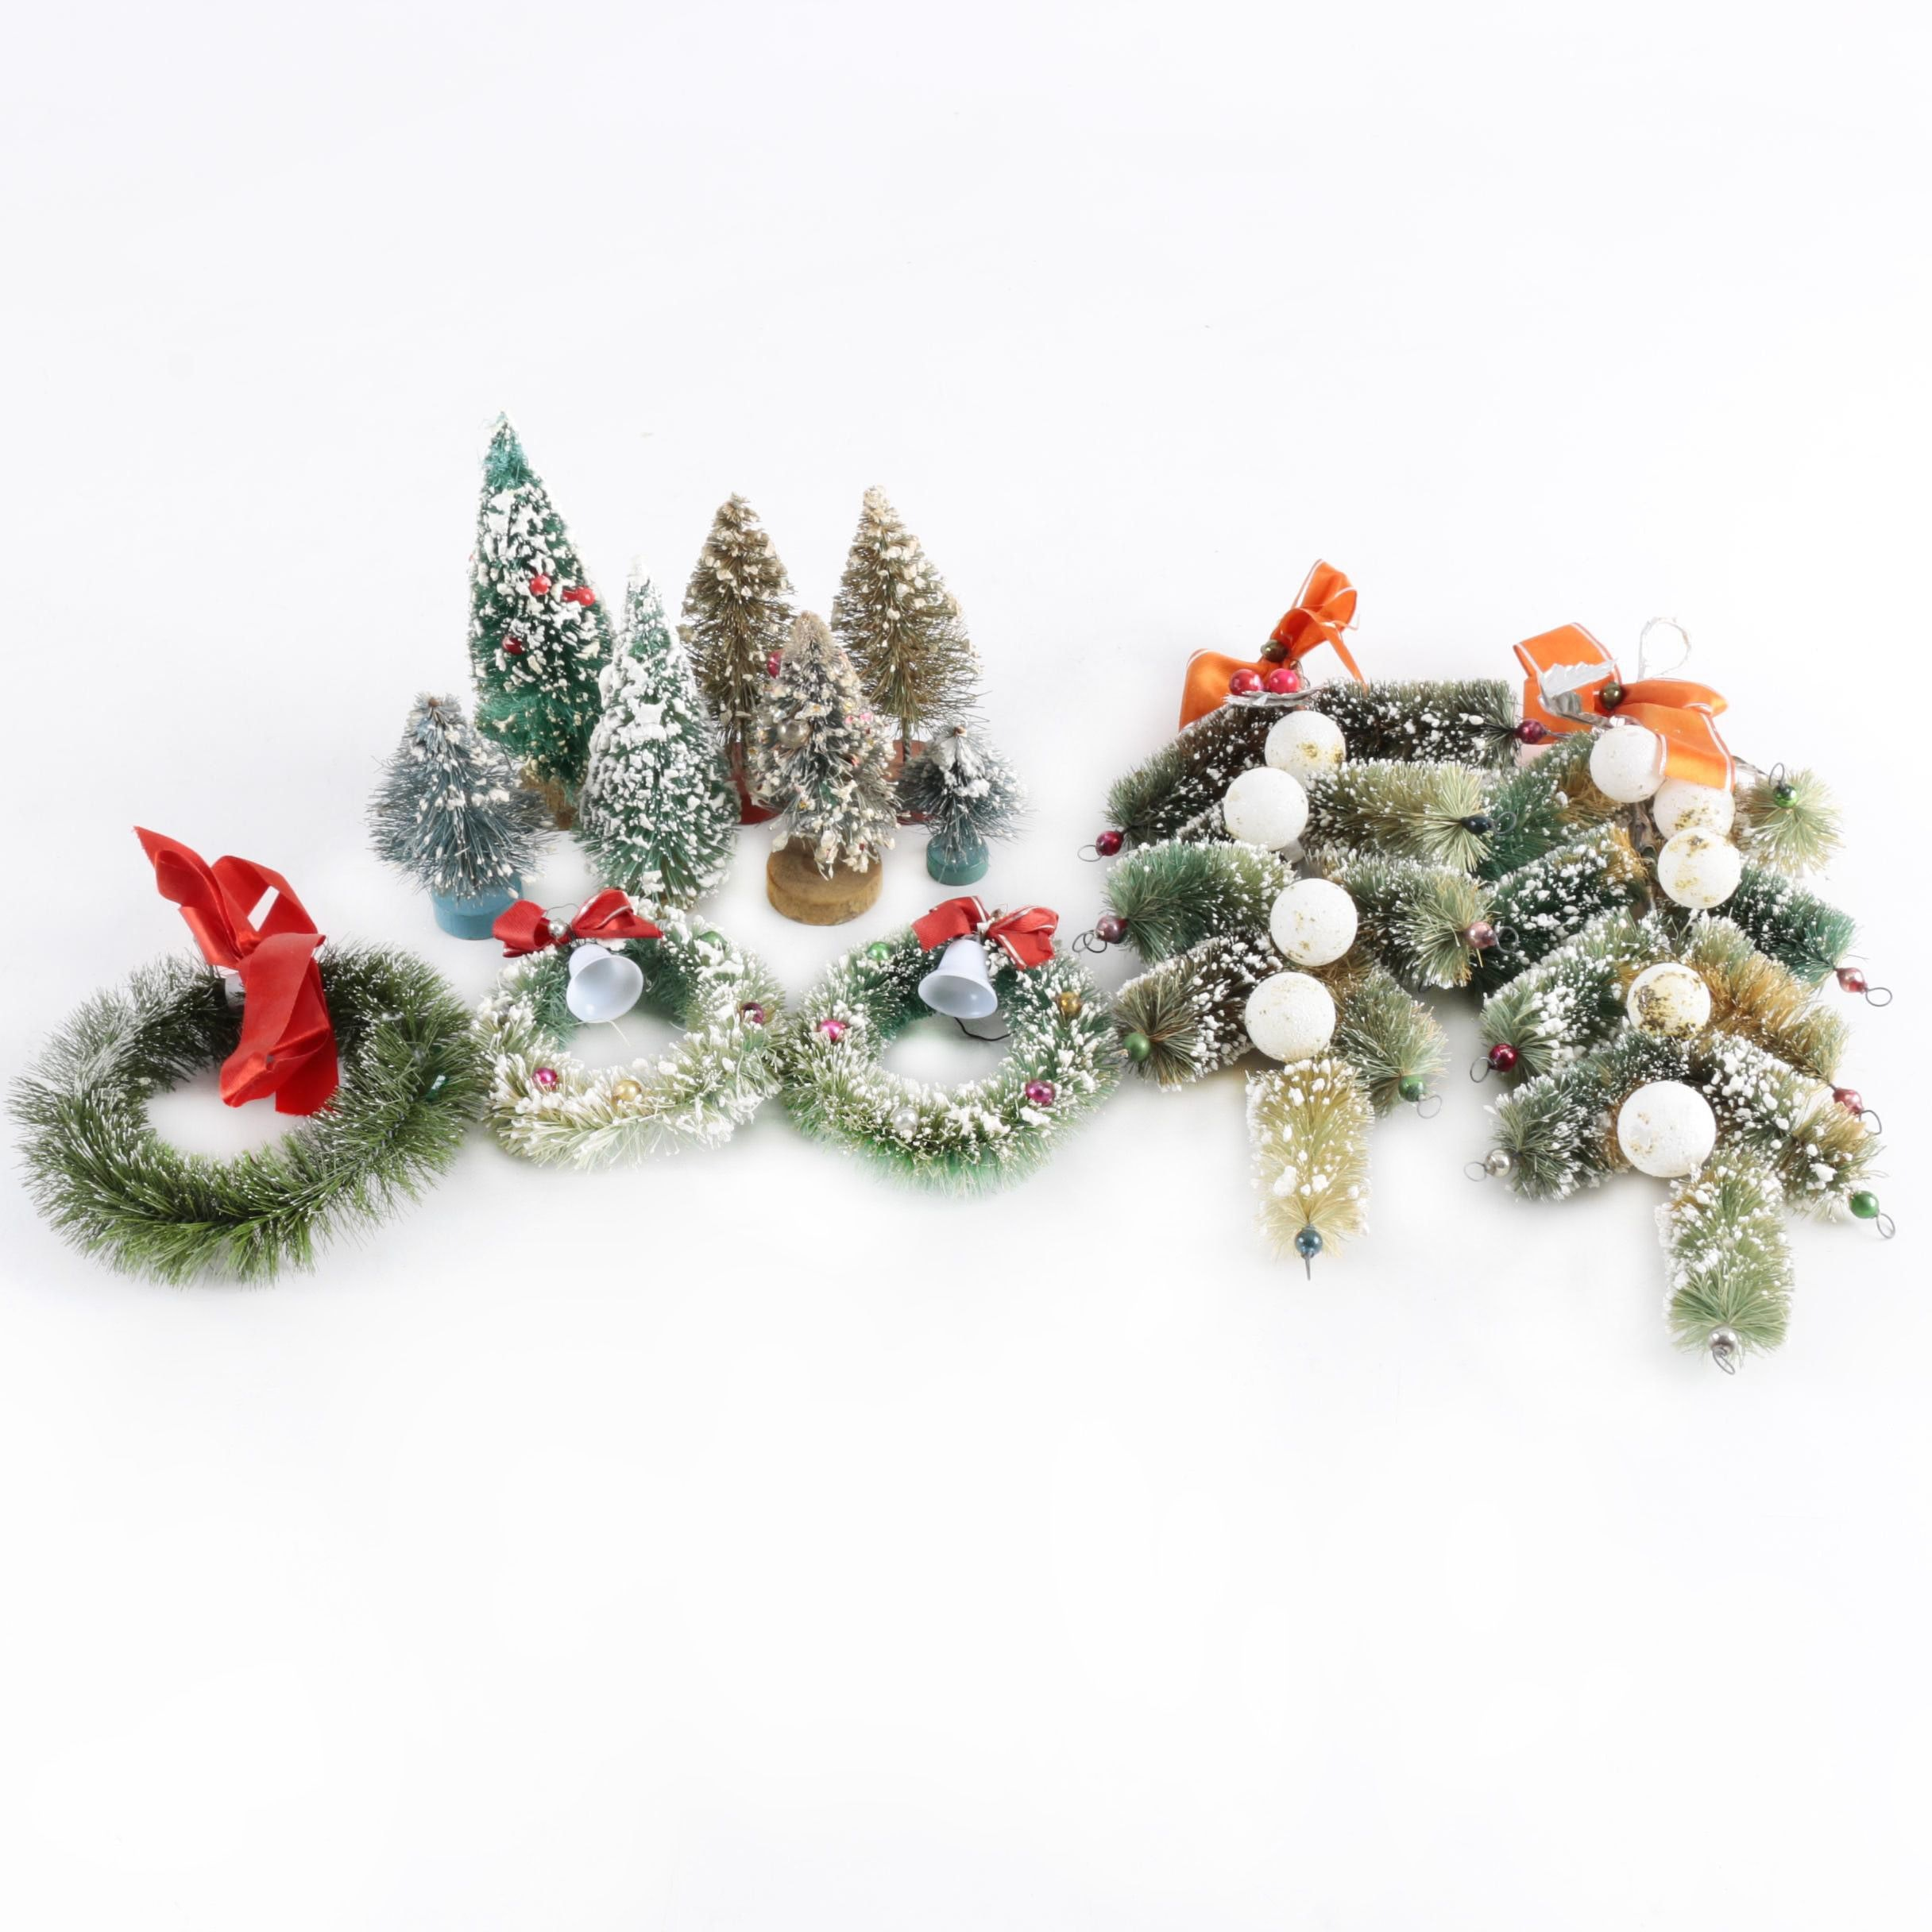 Assortment of Small Vintage Christmas Trees and Décor